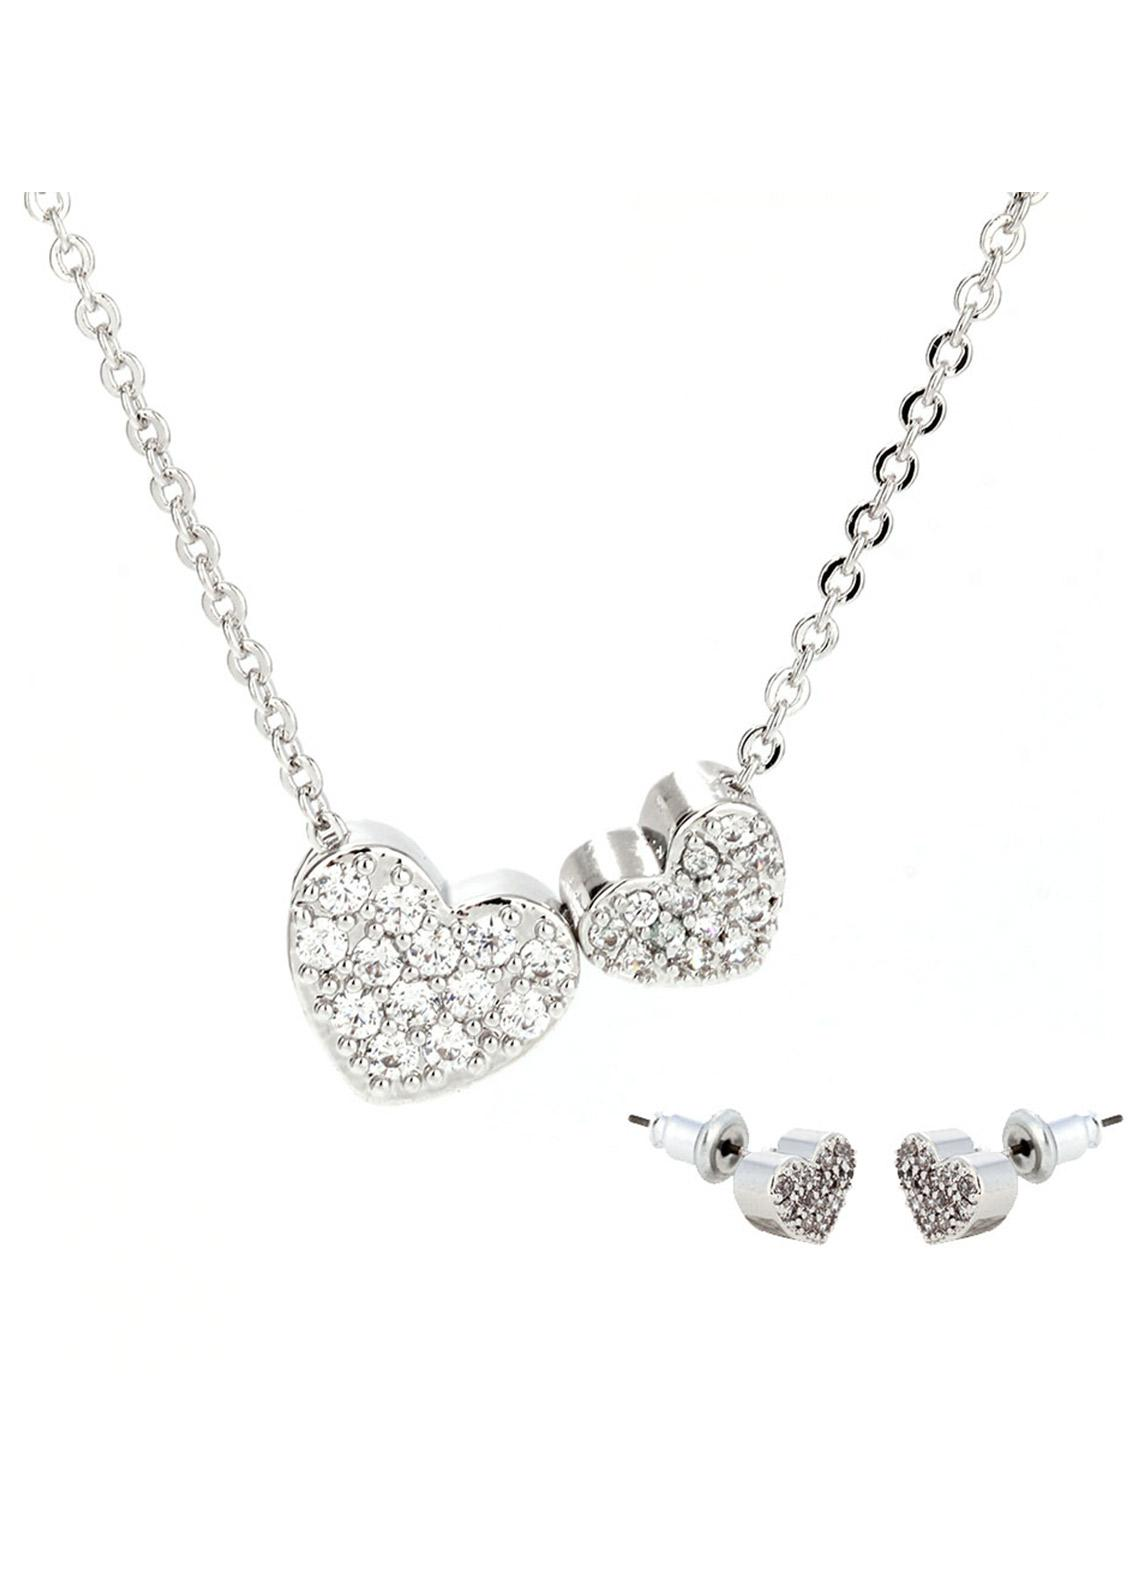 Anna Grace London by Silk Avenue Silver Plated Crystal Two Hearts Necklace & Earrings Jewelry Set AGNE014 - Ladies Jewellery